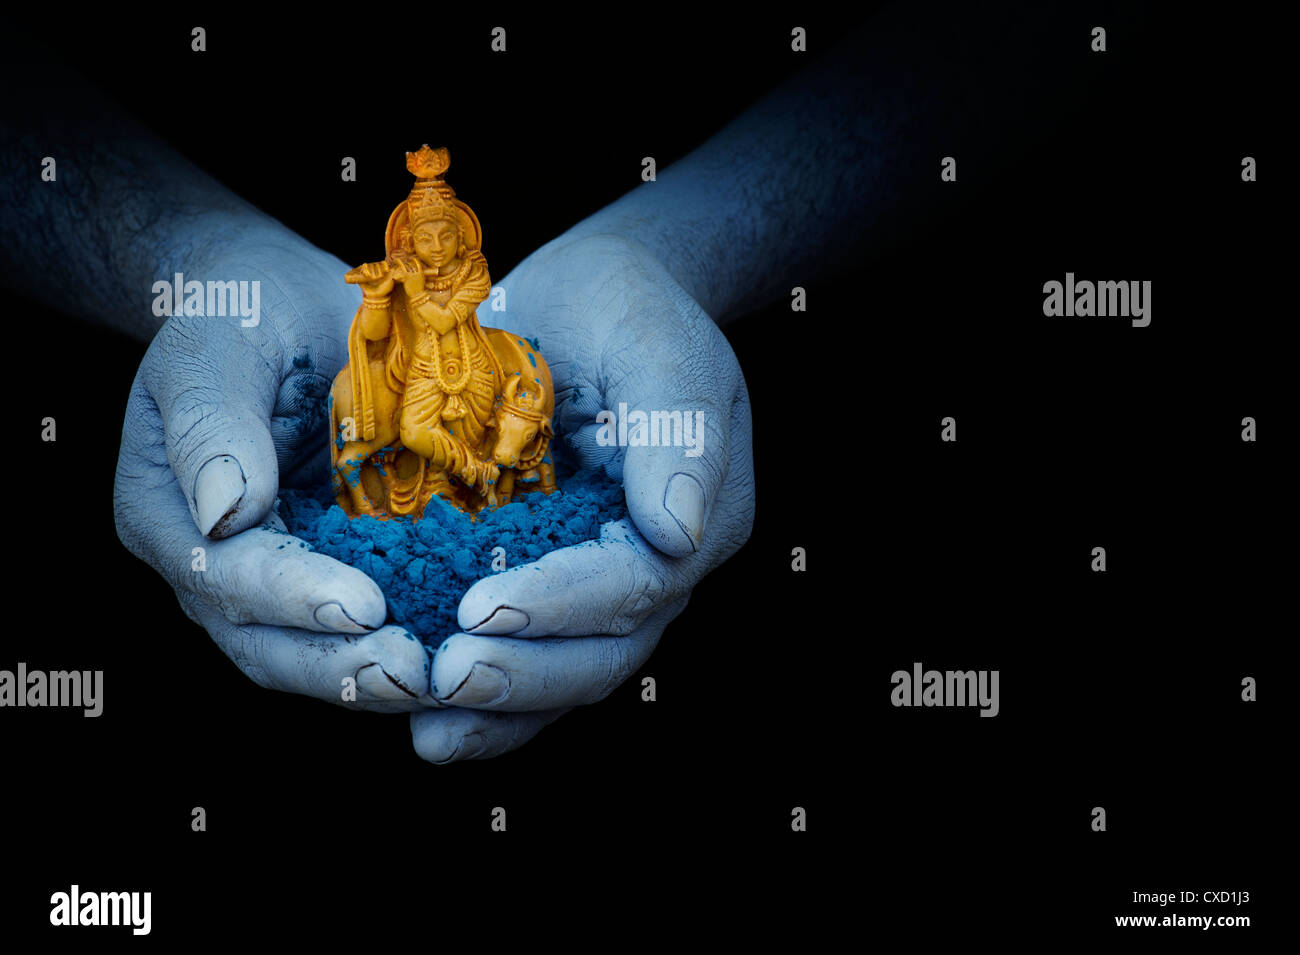 blue indian mans hands holding lord krishna statue and blue powder CXD1J3